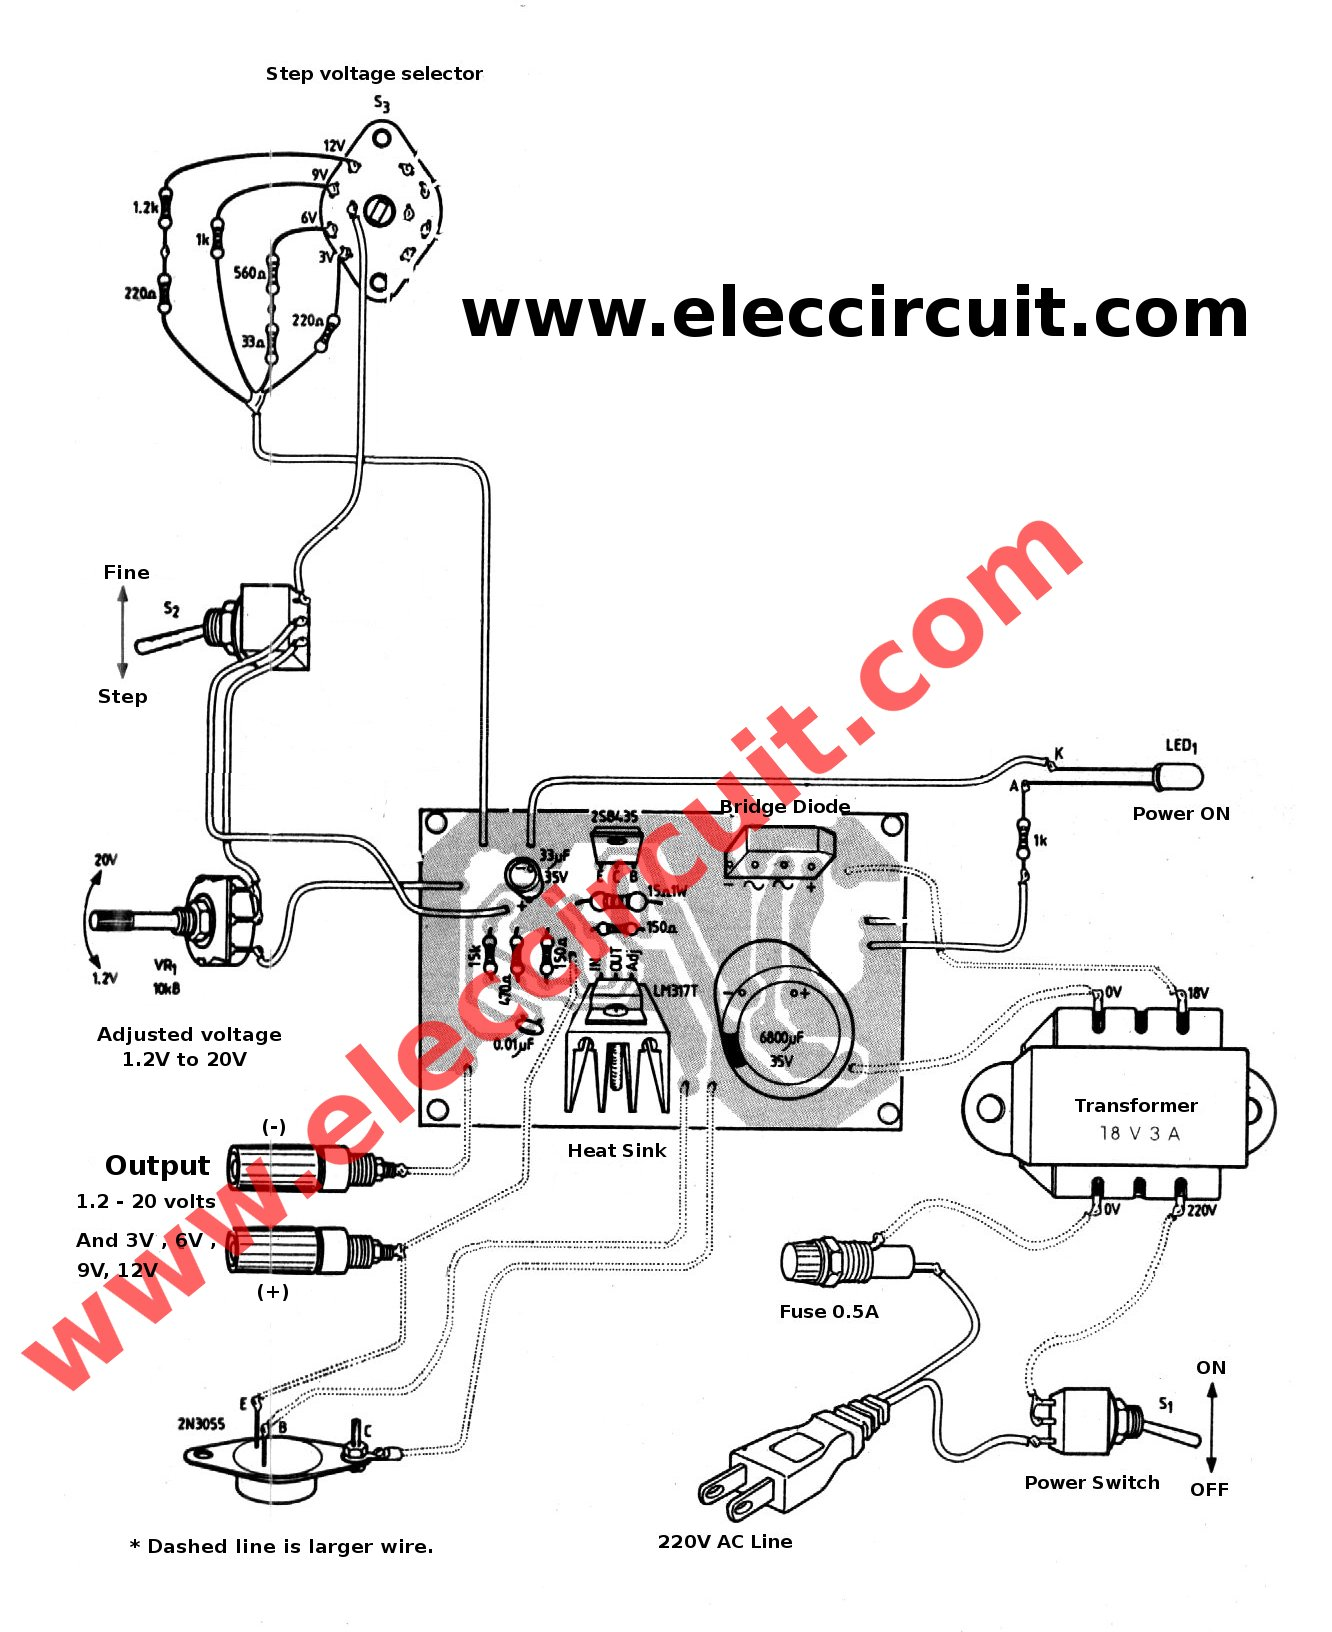 3a Adjustable Voltage Regulator Circuit With Pcb Ac Dc Theory Circuits The Components Layout Of Best Power Supply